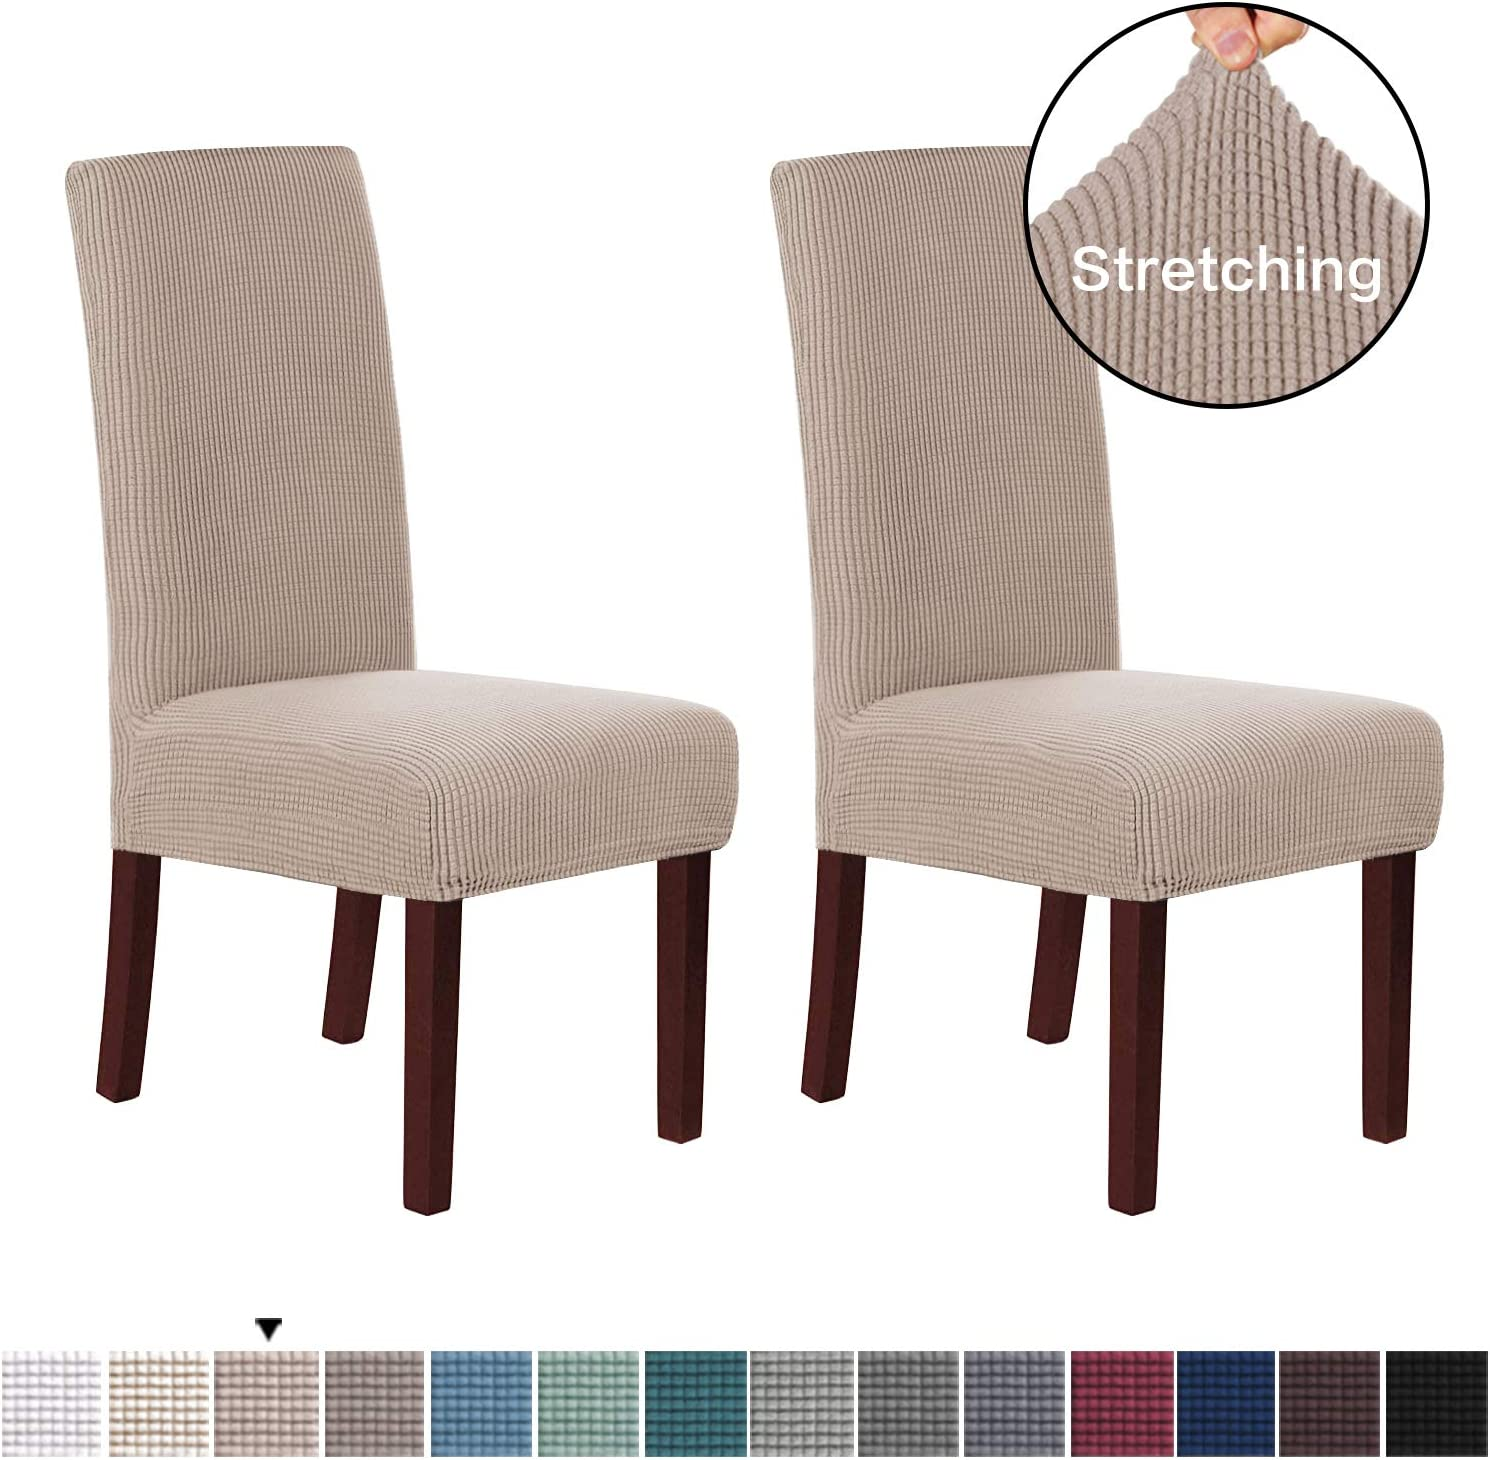 Stretch Dining Chair Covers Chair Covers for Dining Room Set of 10 Parson  Chair Covers Slipcovers Chair Protectors Covers Dining, Feature Spandex